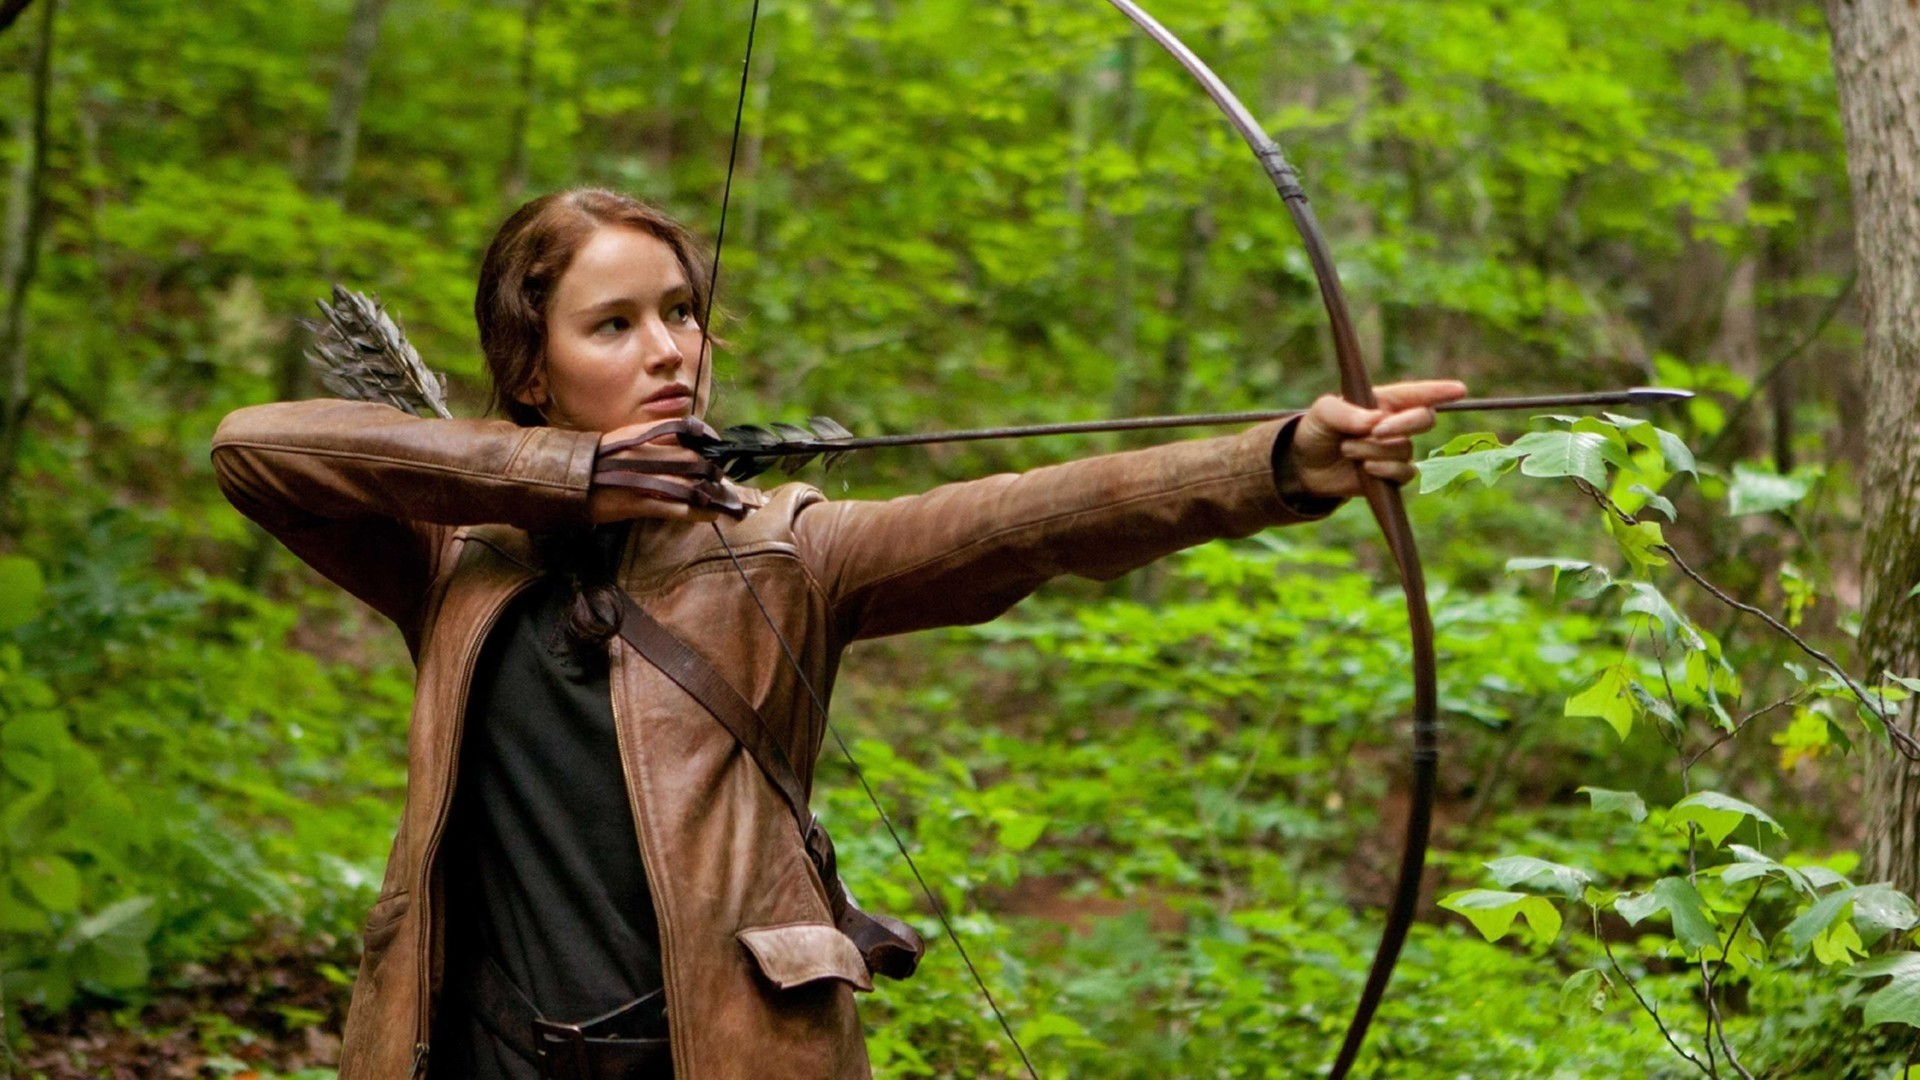 Archery wallpaper for pc